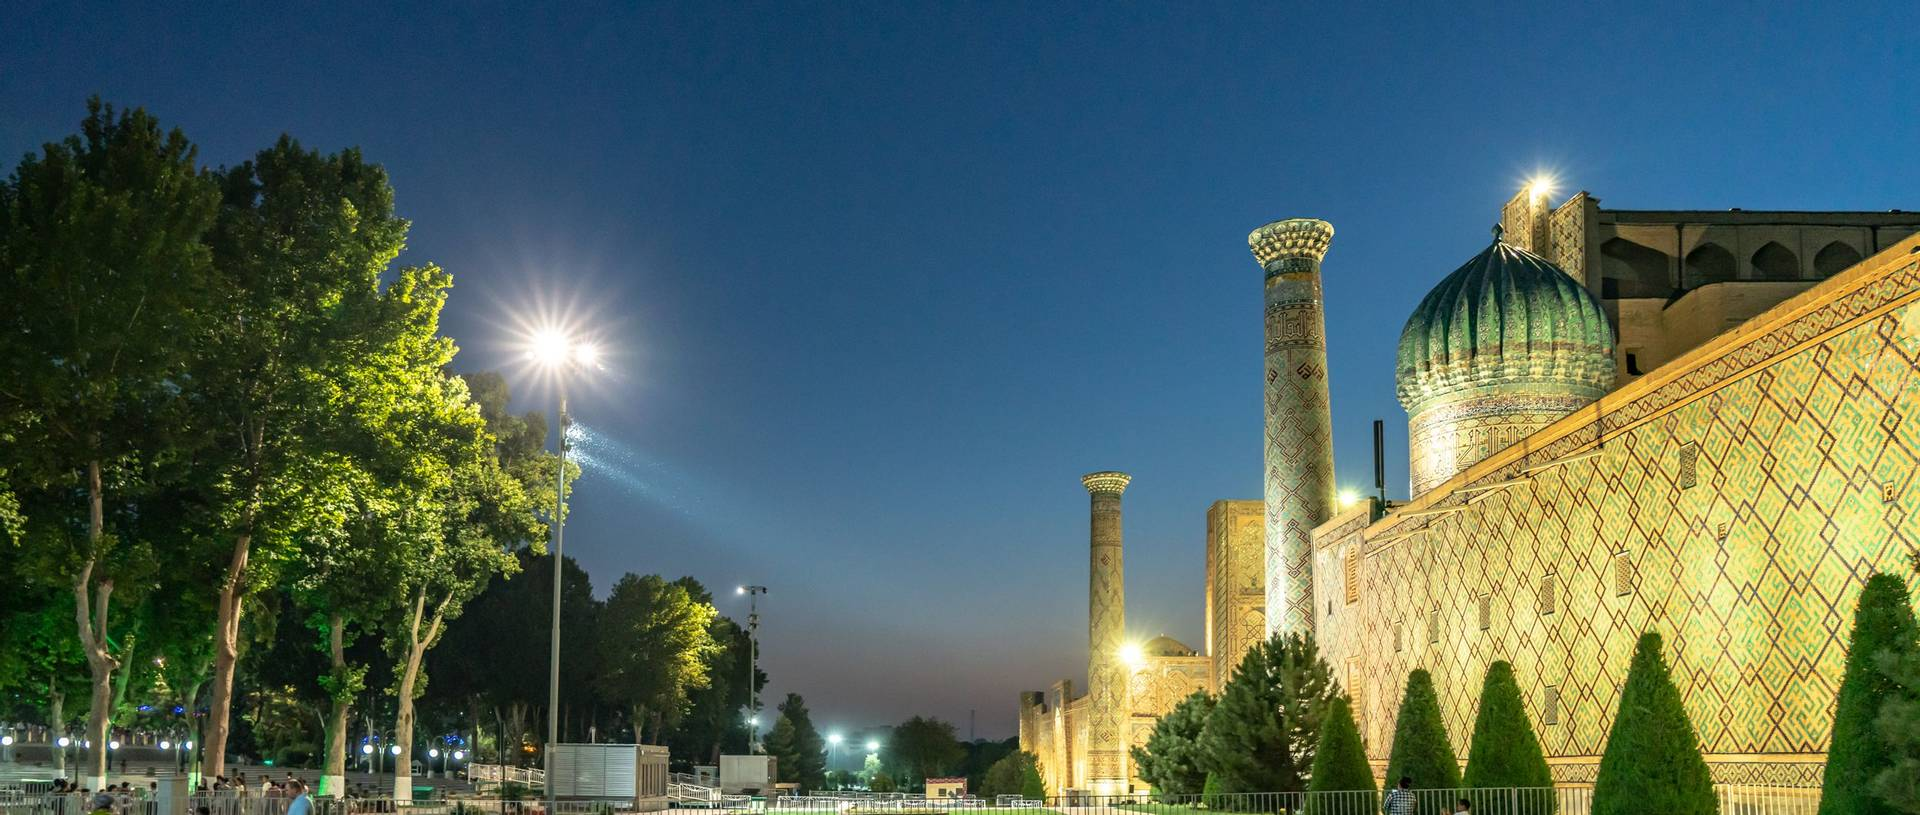 The evening lights of the Registan in Samarkand.jpg